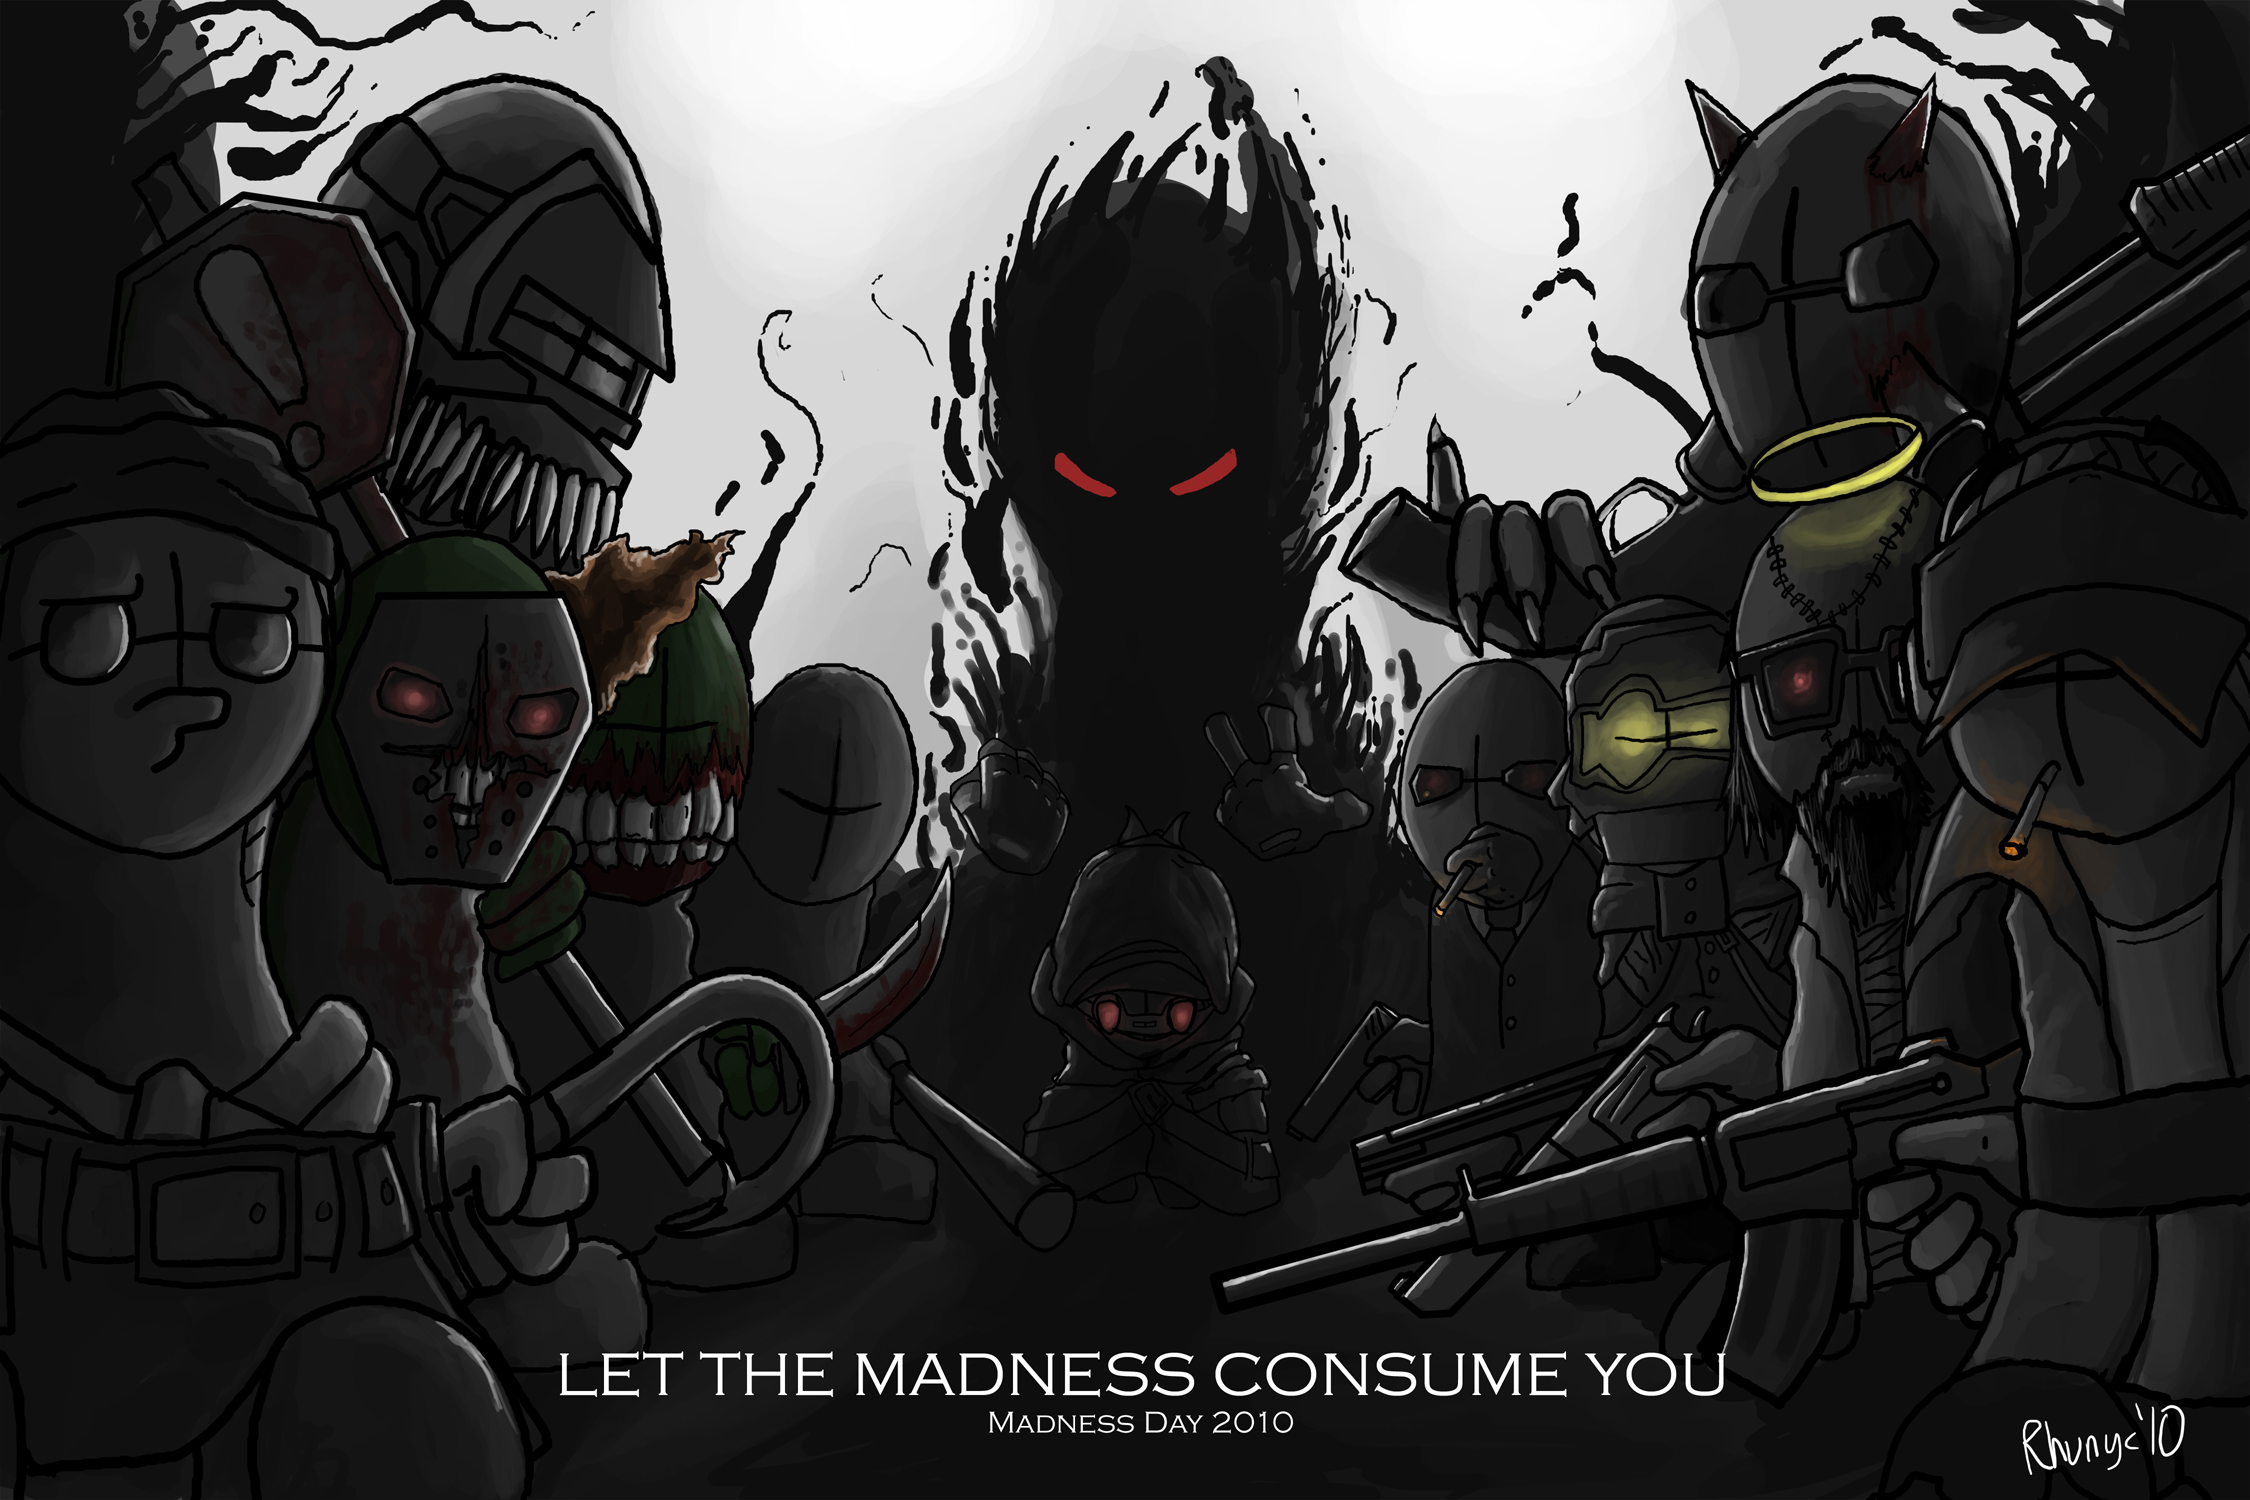 Let the Madness Consume You